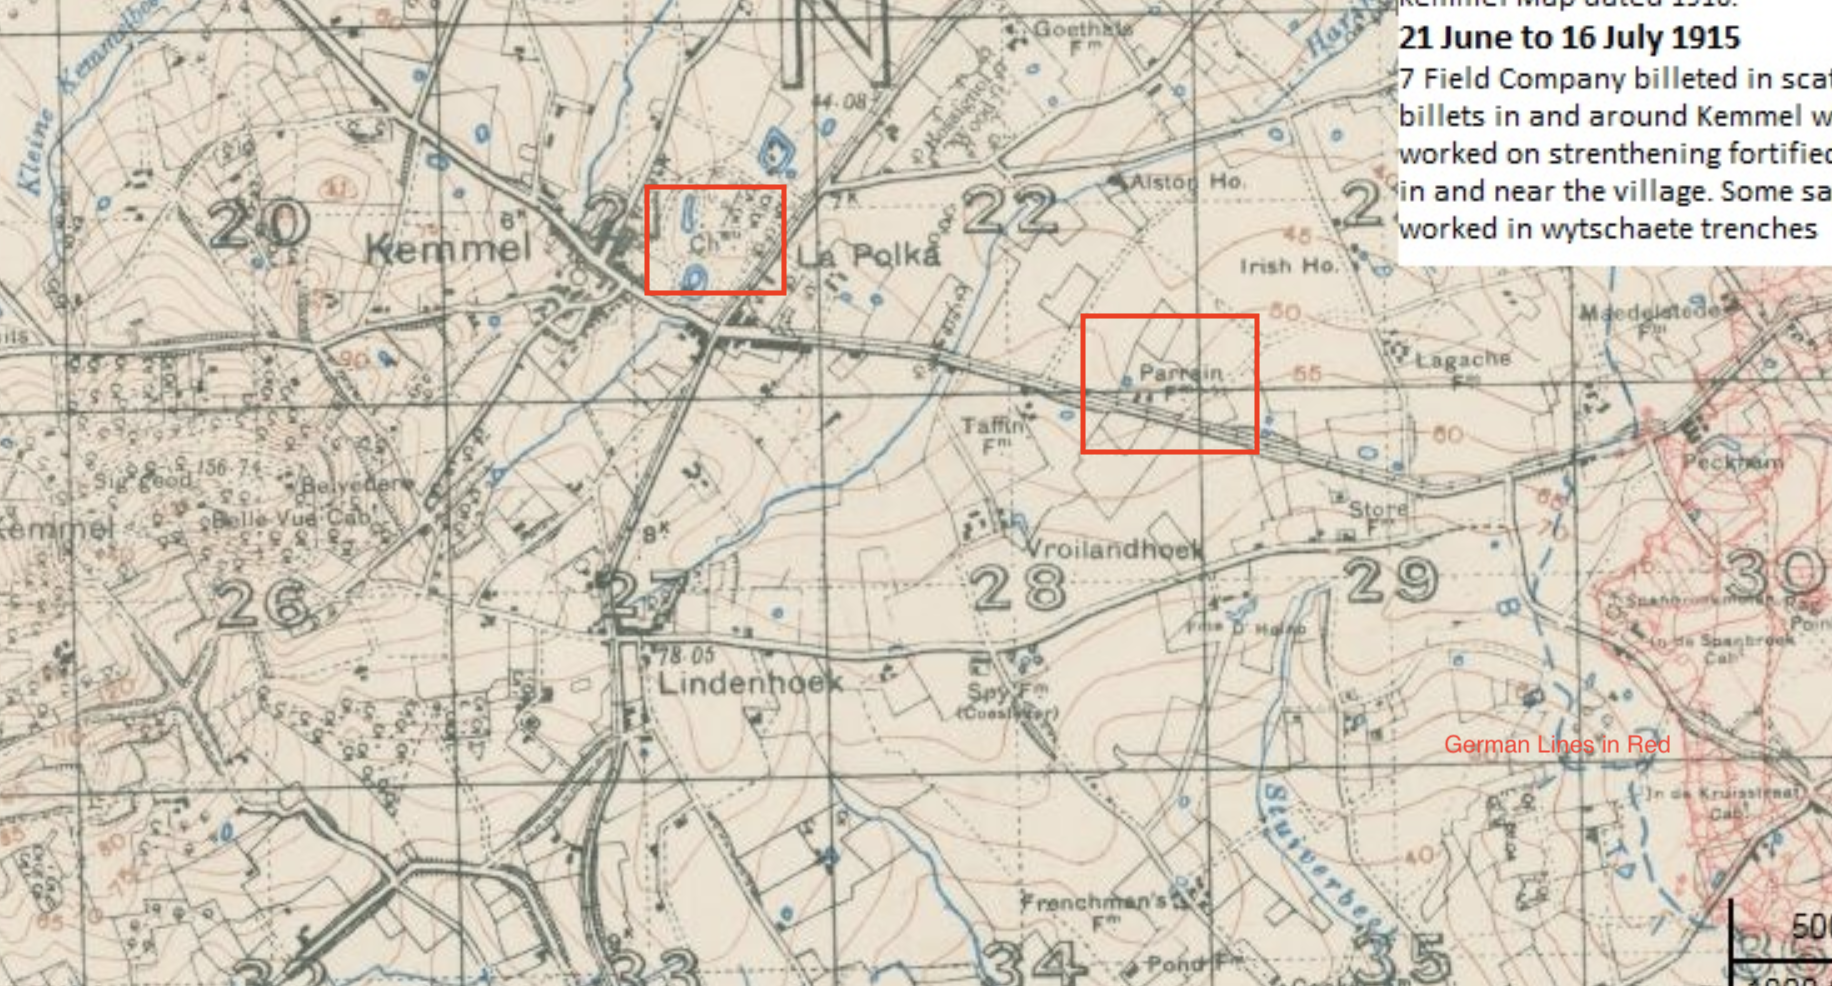 The positions where Nicholls joined D Company on March 14. The left box is over Kemmel Chateau. The German Front lines are marked out in Red on the right. Canadian Front lines, occupied by other companies of the 31st are denoted by the dotted blue line running parallel to the German lines.